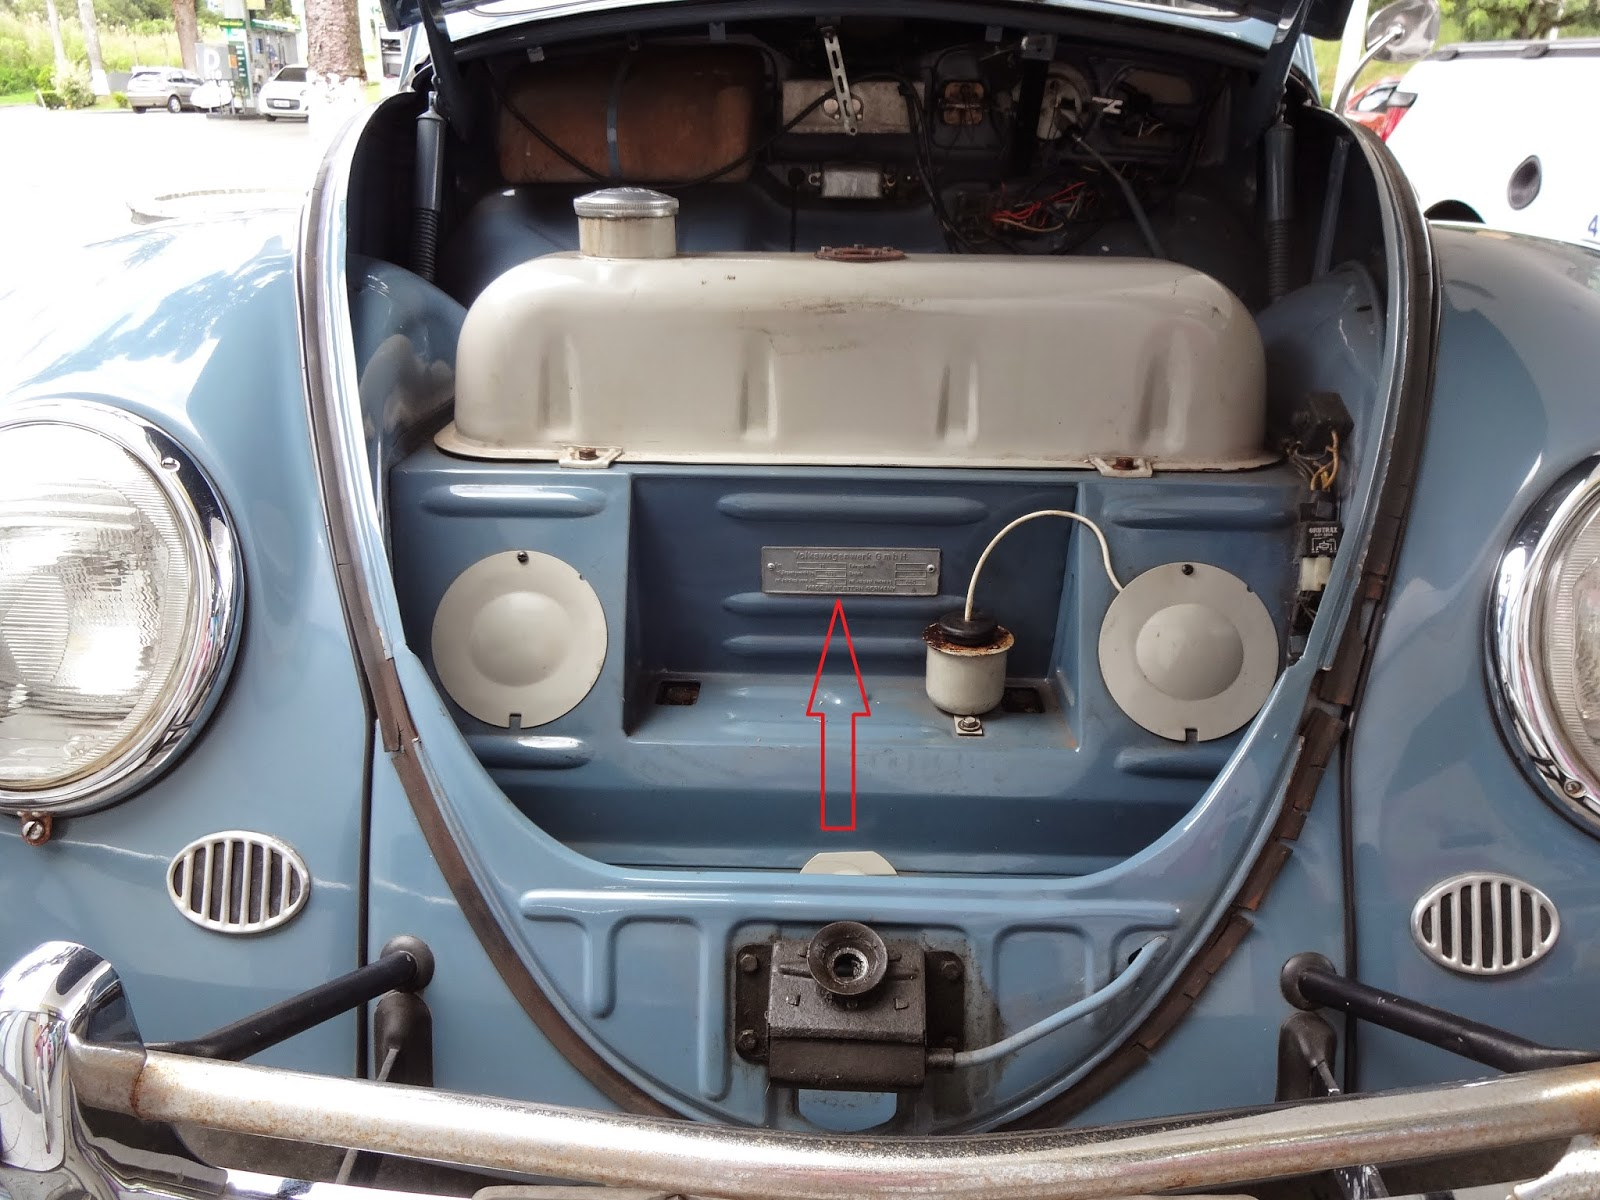 Volkswagen Repair furthermore File Herbie 53 in addition Collectible Classic 1990 1992 Volkswagen Jetta Gli also Watch together with Exhaust Flap 2552590. on vw beetle logo